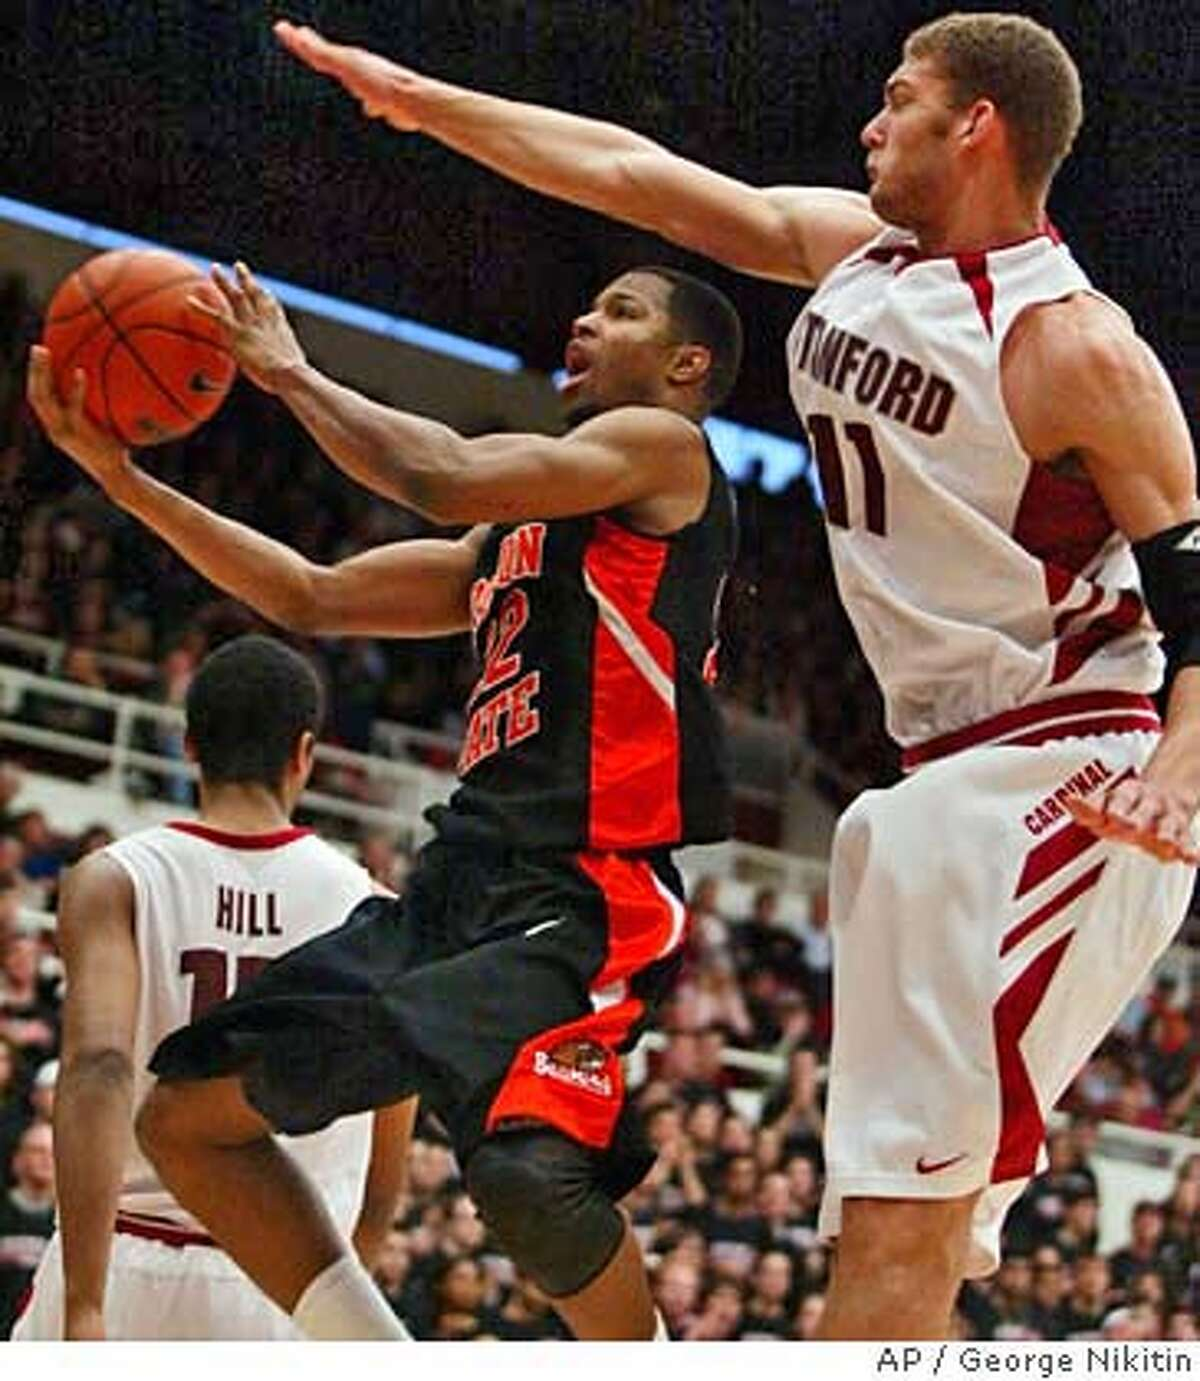 Oregon State's Calvin Haynes goes up for a shot as Stanford's Brook Lopez guards during the first half of a basketball game Saturday, Feb. 9, 2008, in Stanford, Calif. (AP Photo/George Nikitin)